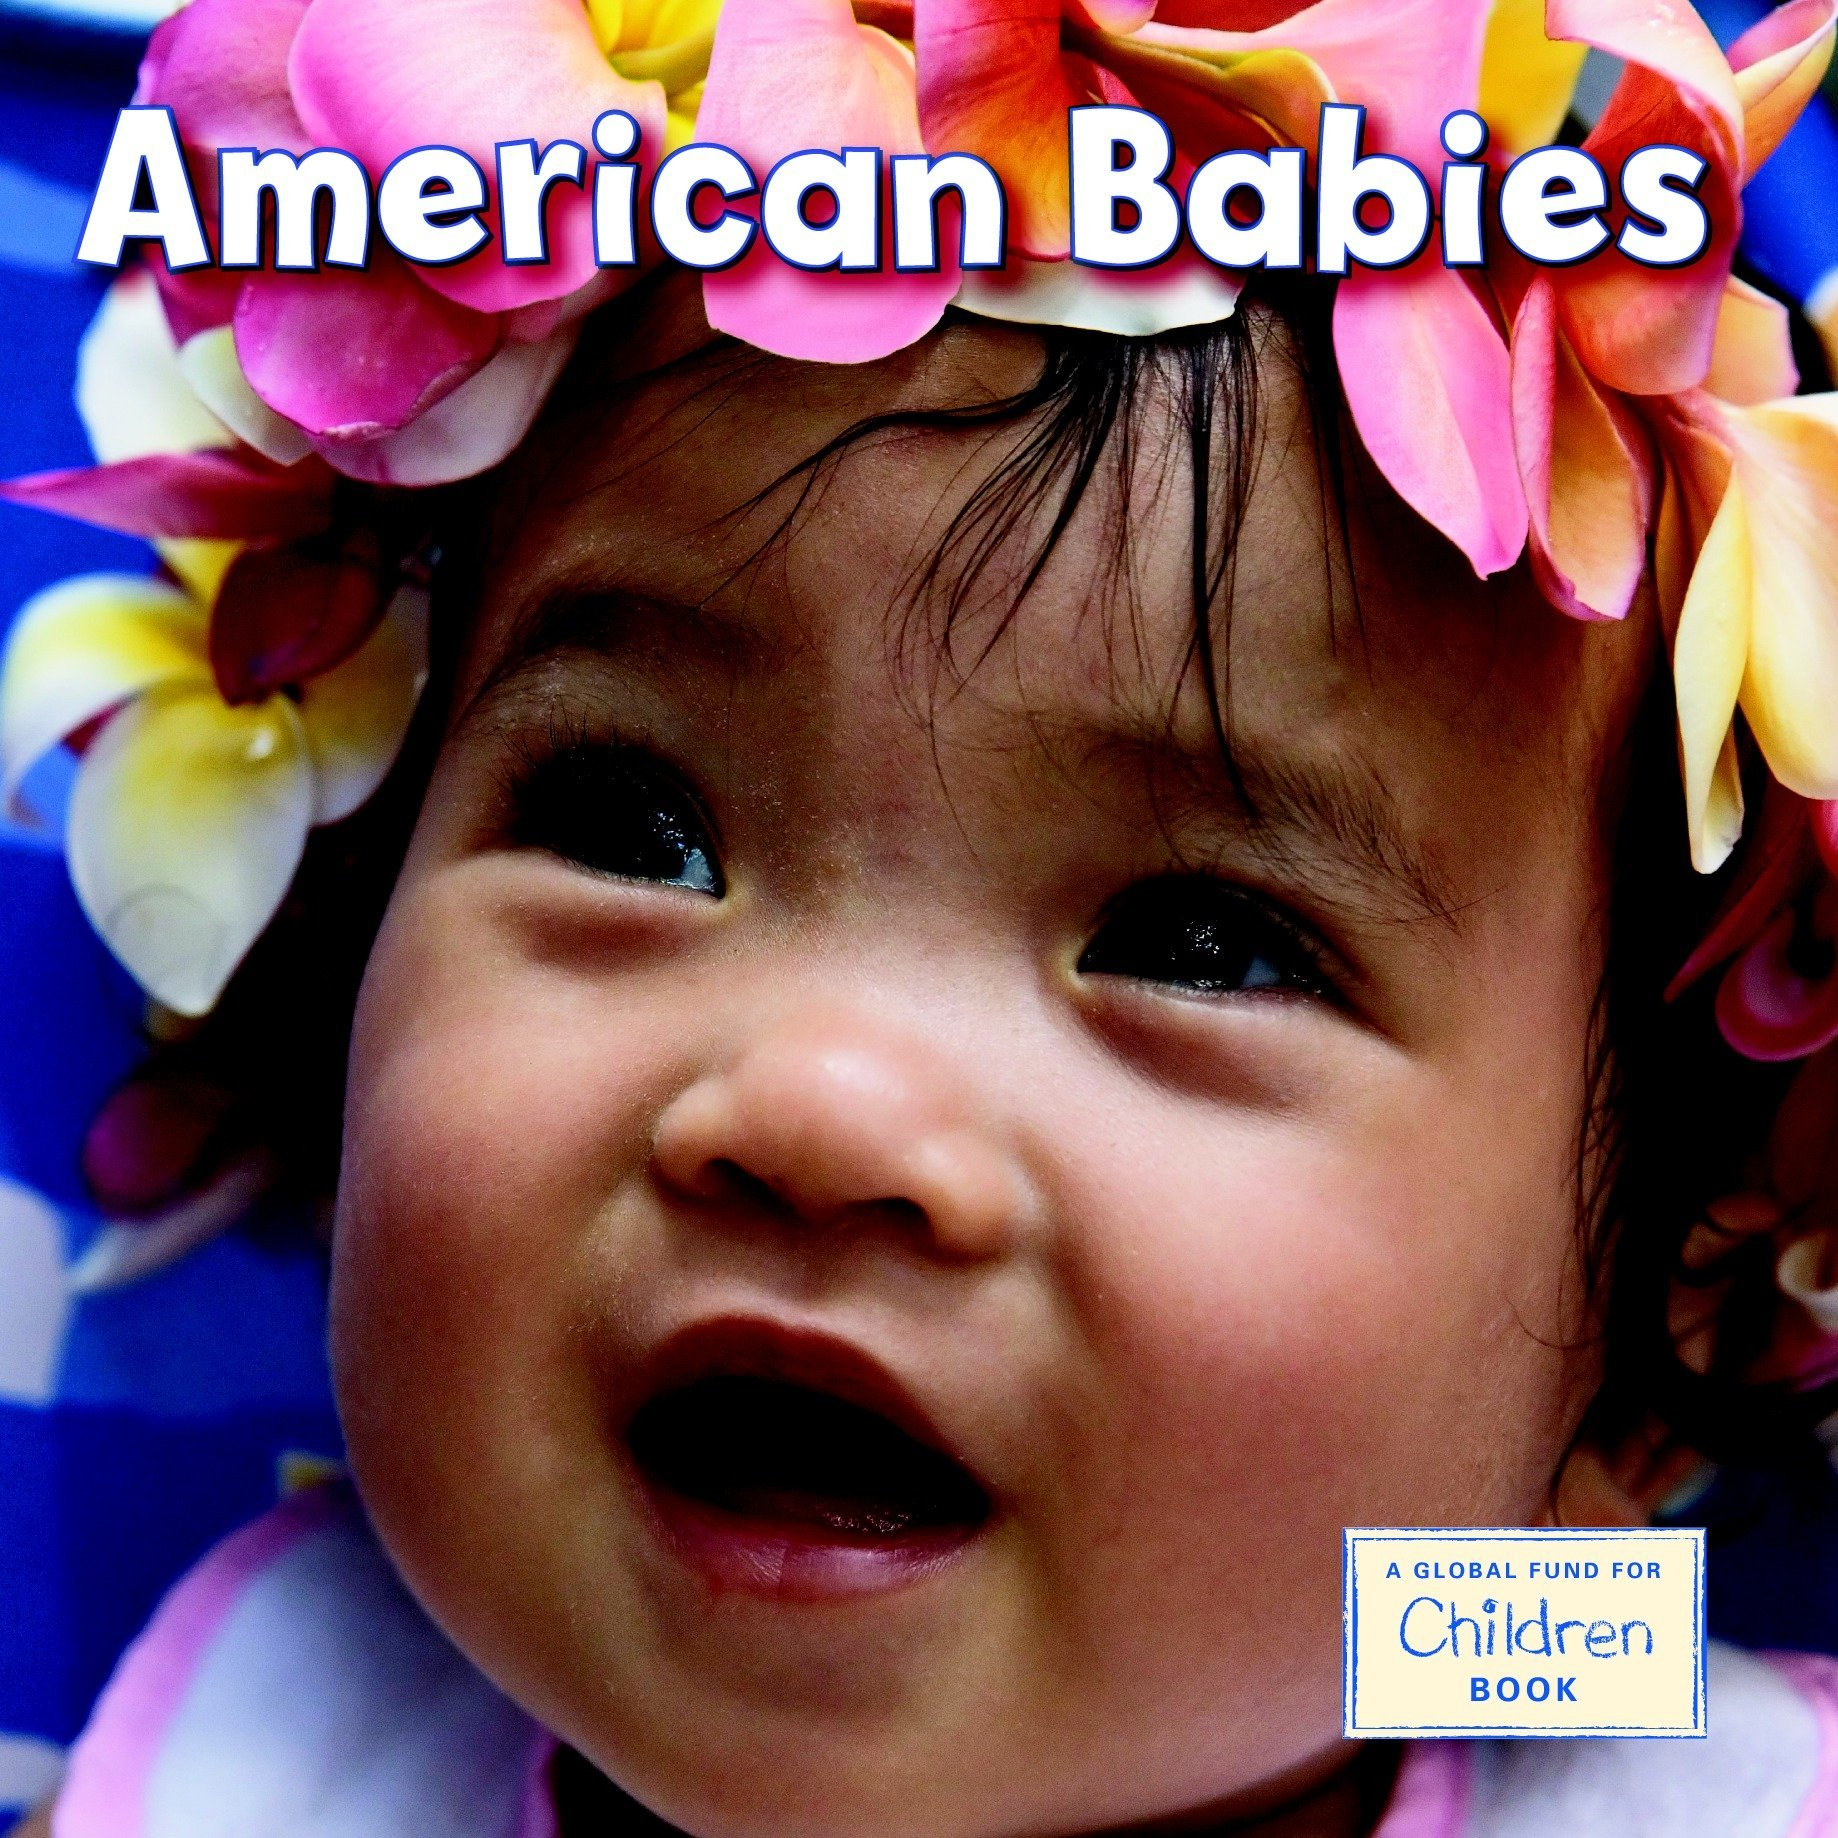 American Babies (Global Fund for Children Books) PDF